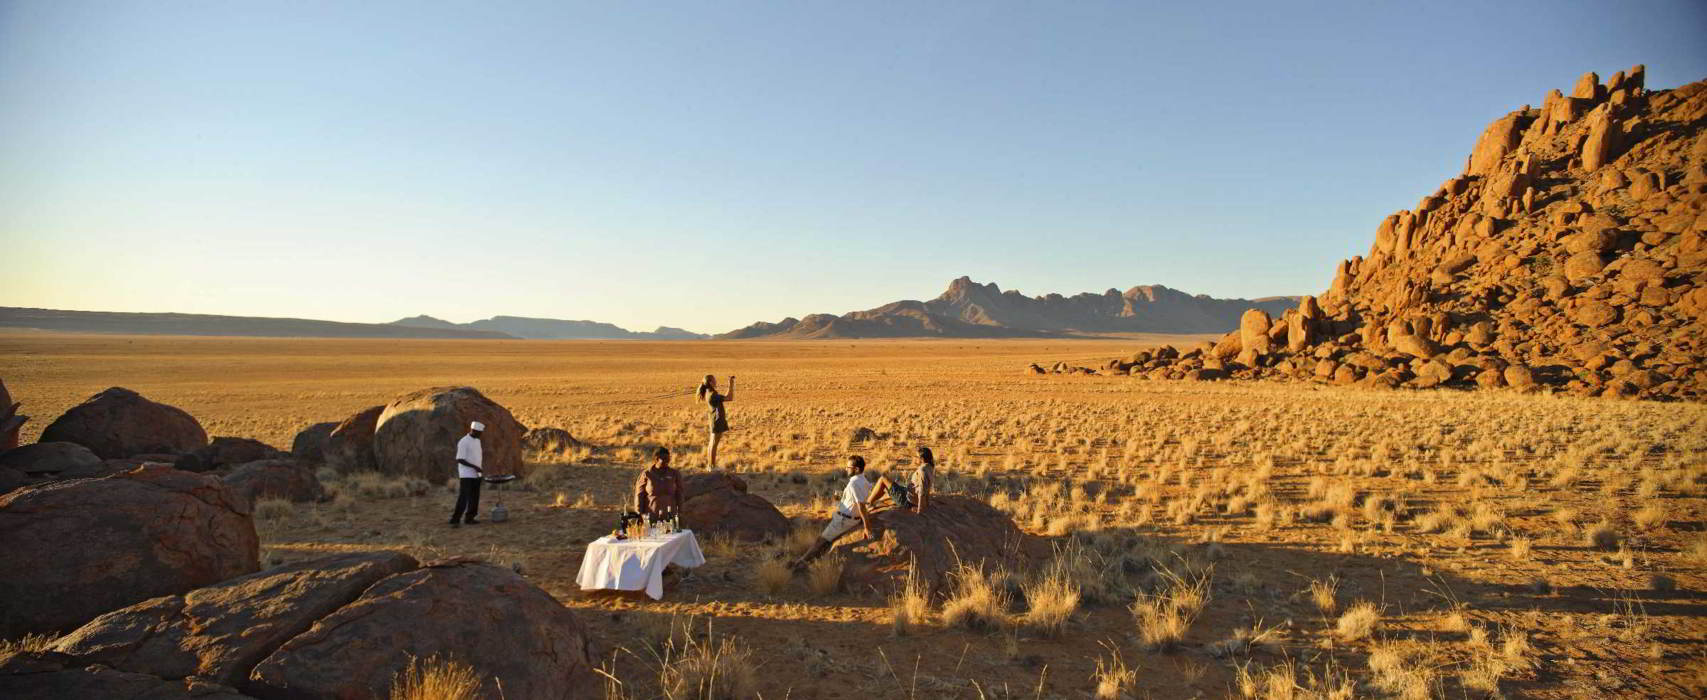 namibia-desert-holiday